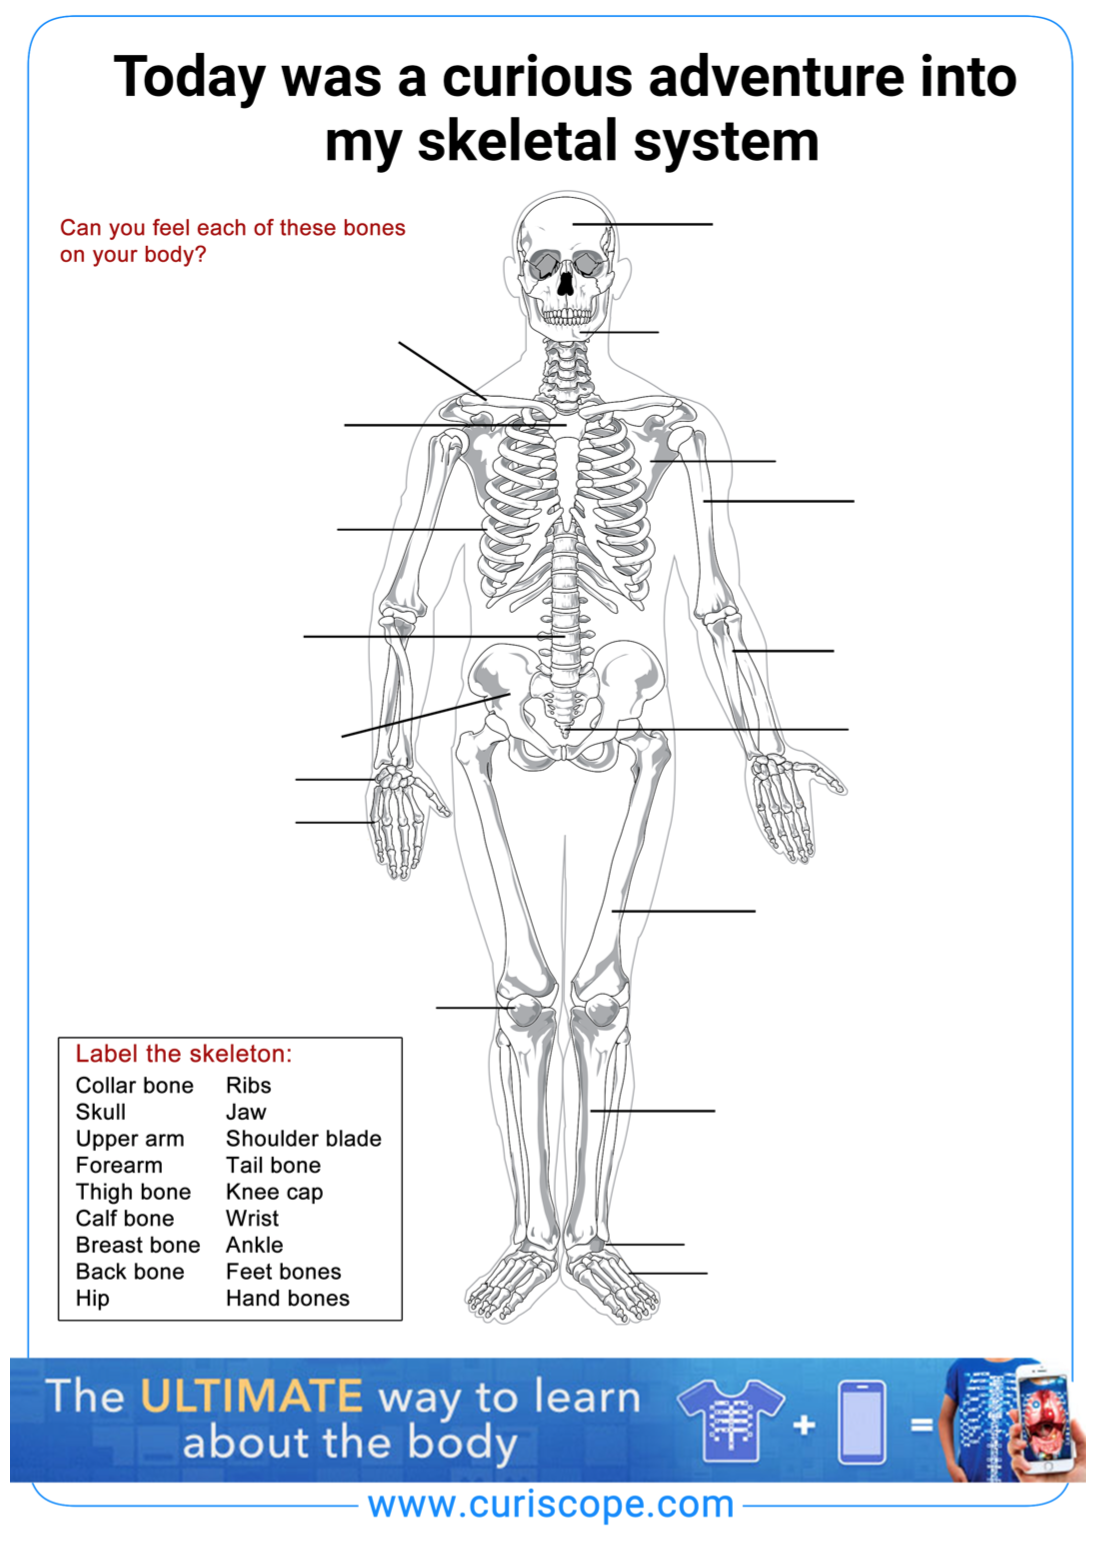 Teach Children All About The Human Body With Our